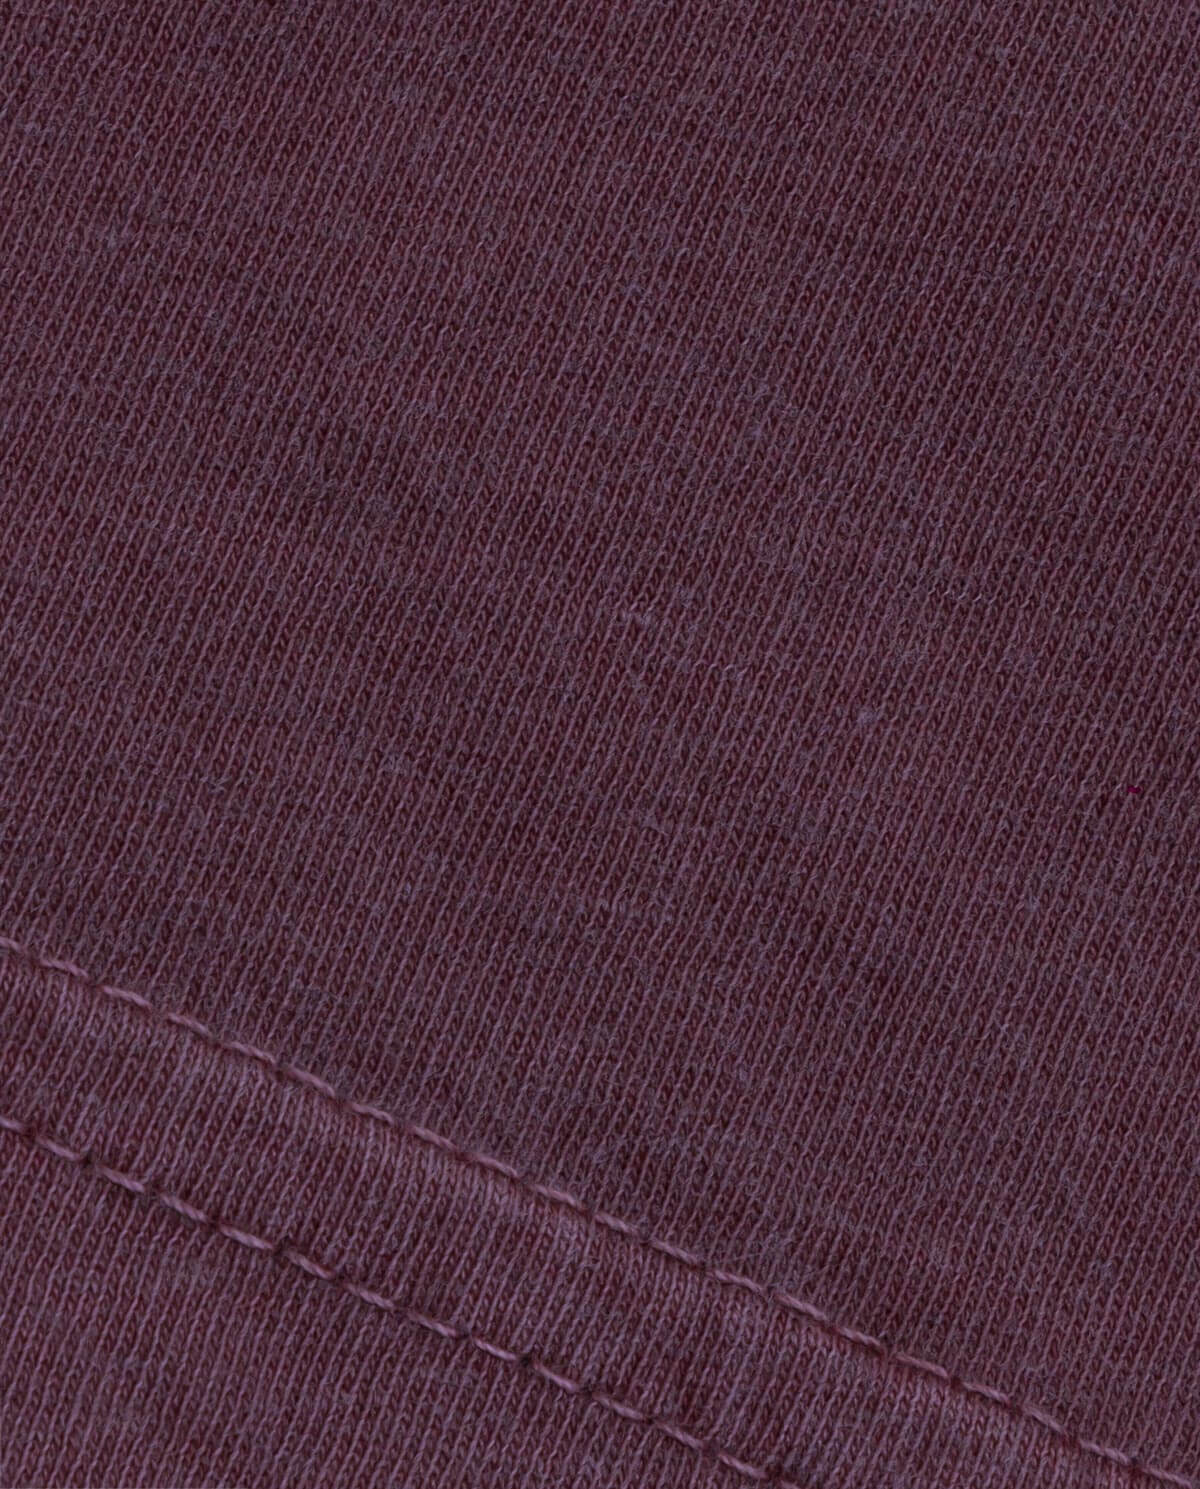 Ahnako Basic Tee Shirt - Pomegrante - Fabric Close Up